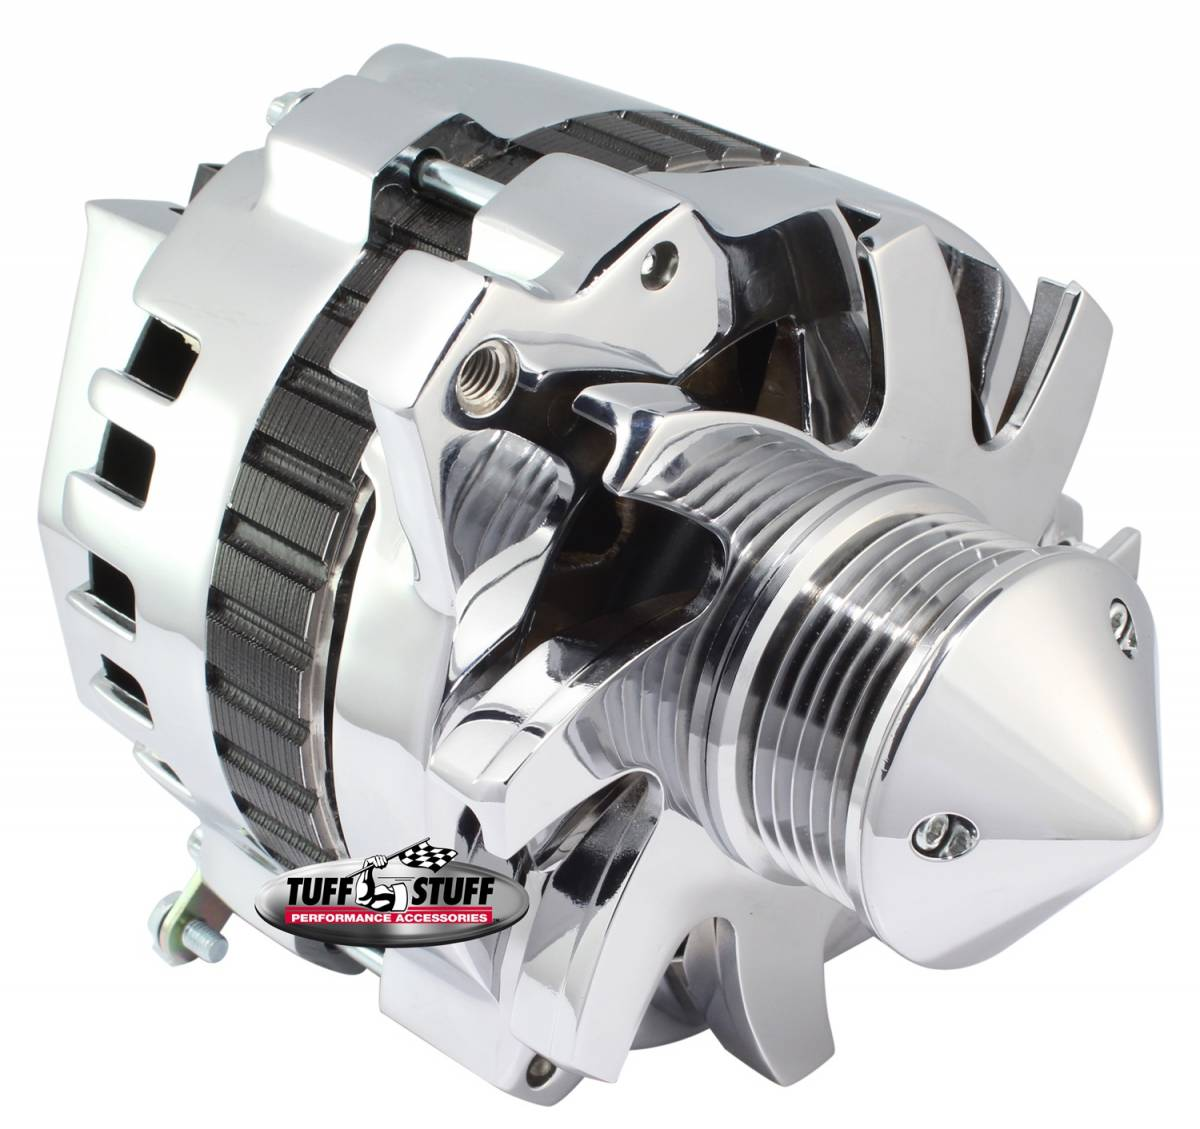 Tuff Stuff Performance - Bullet Alternator 160 AMP 1 Wire Or OEM Hookup 6 Groove Pulley 6.125 in. Bolt To Bolt Chrome 7866F6G22